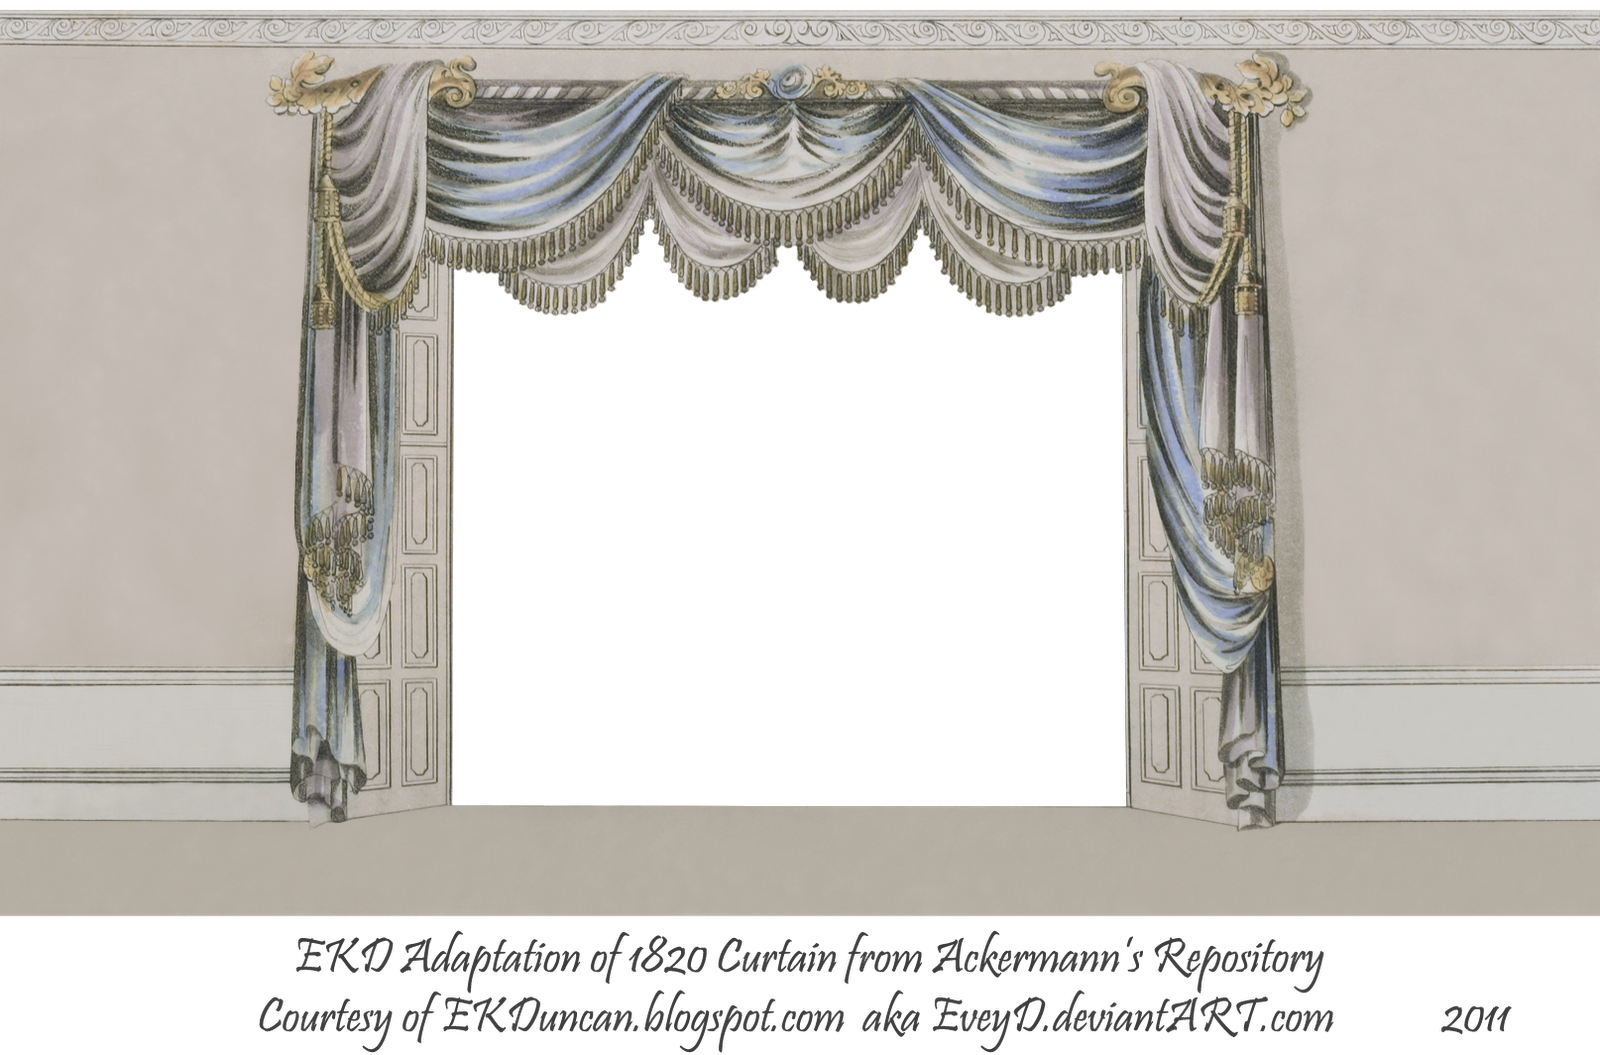 For the curtain portion of the image curtain only png